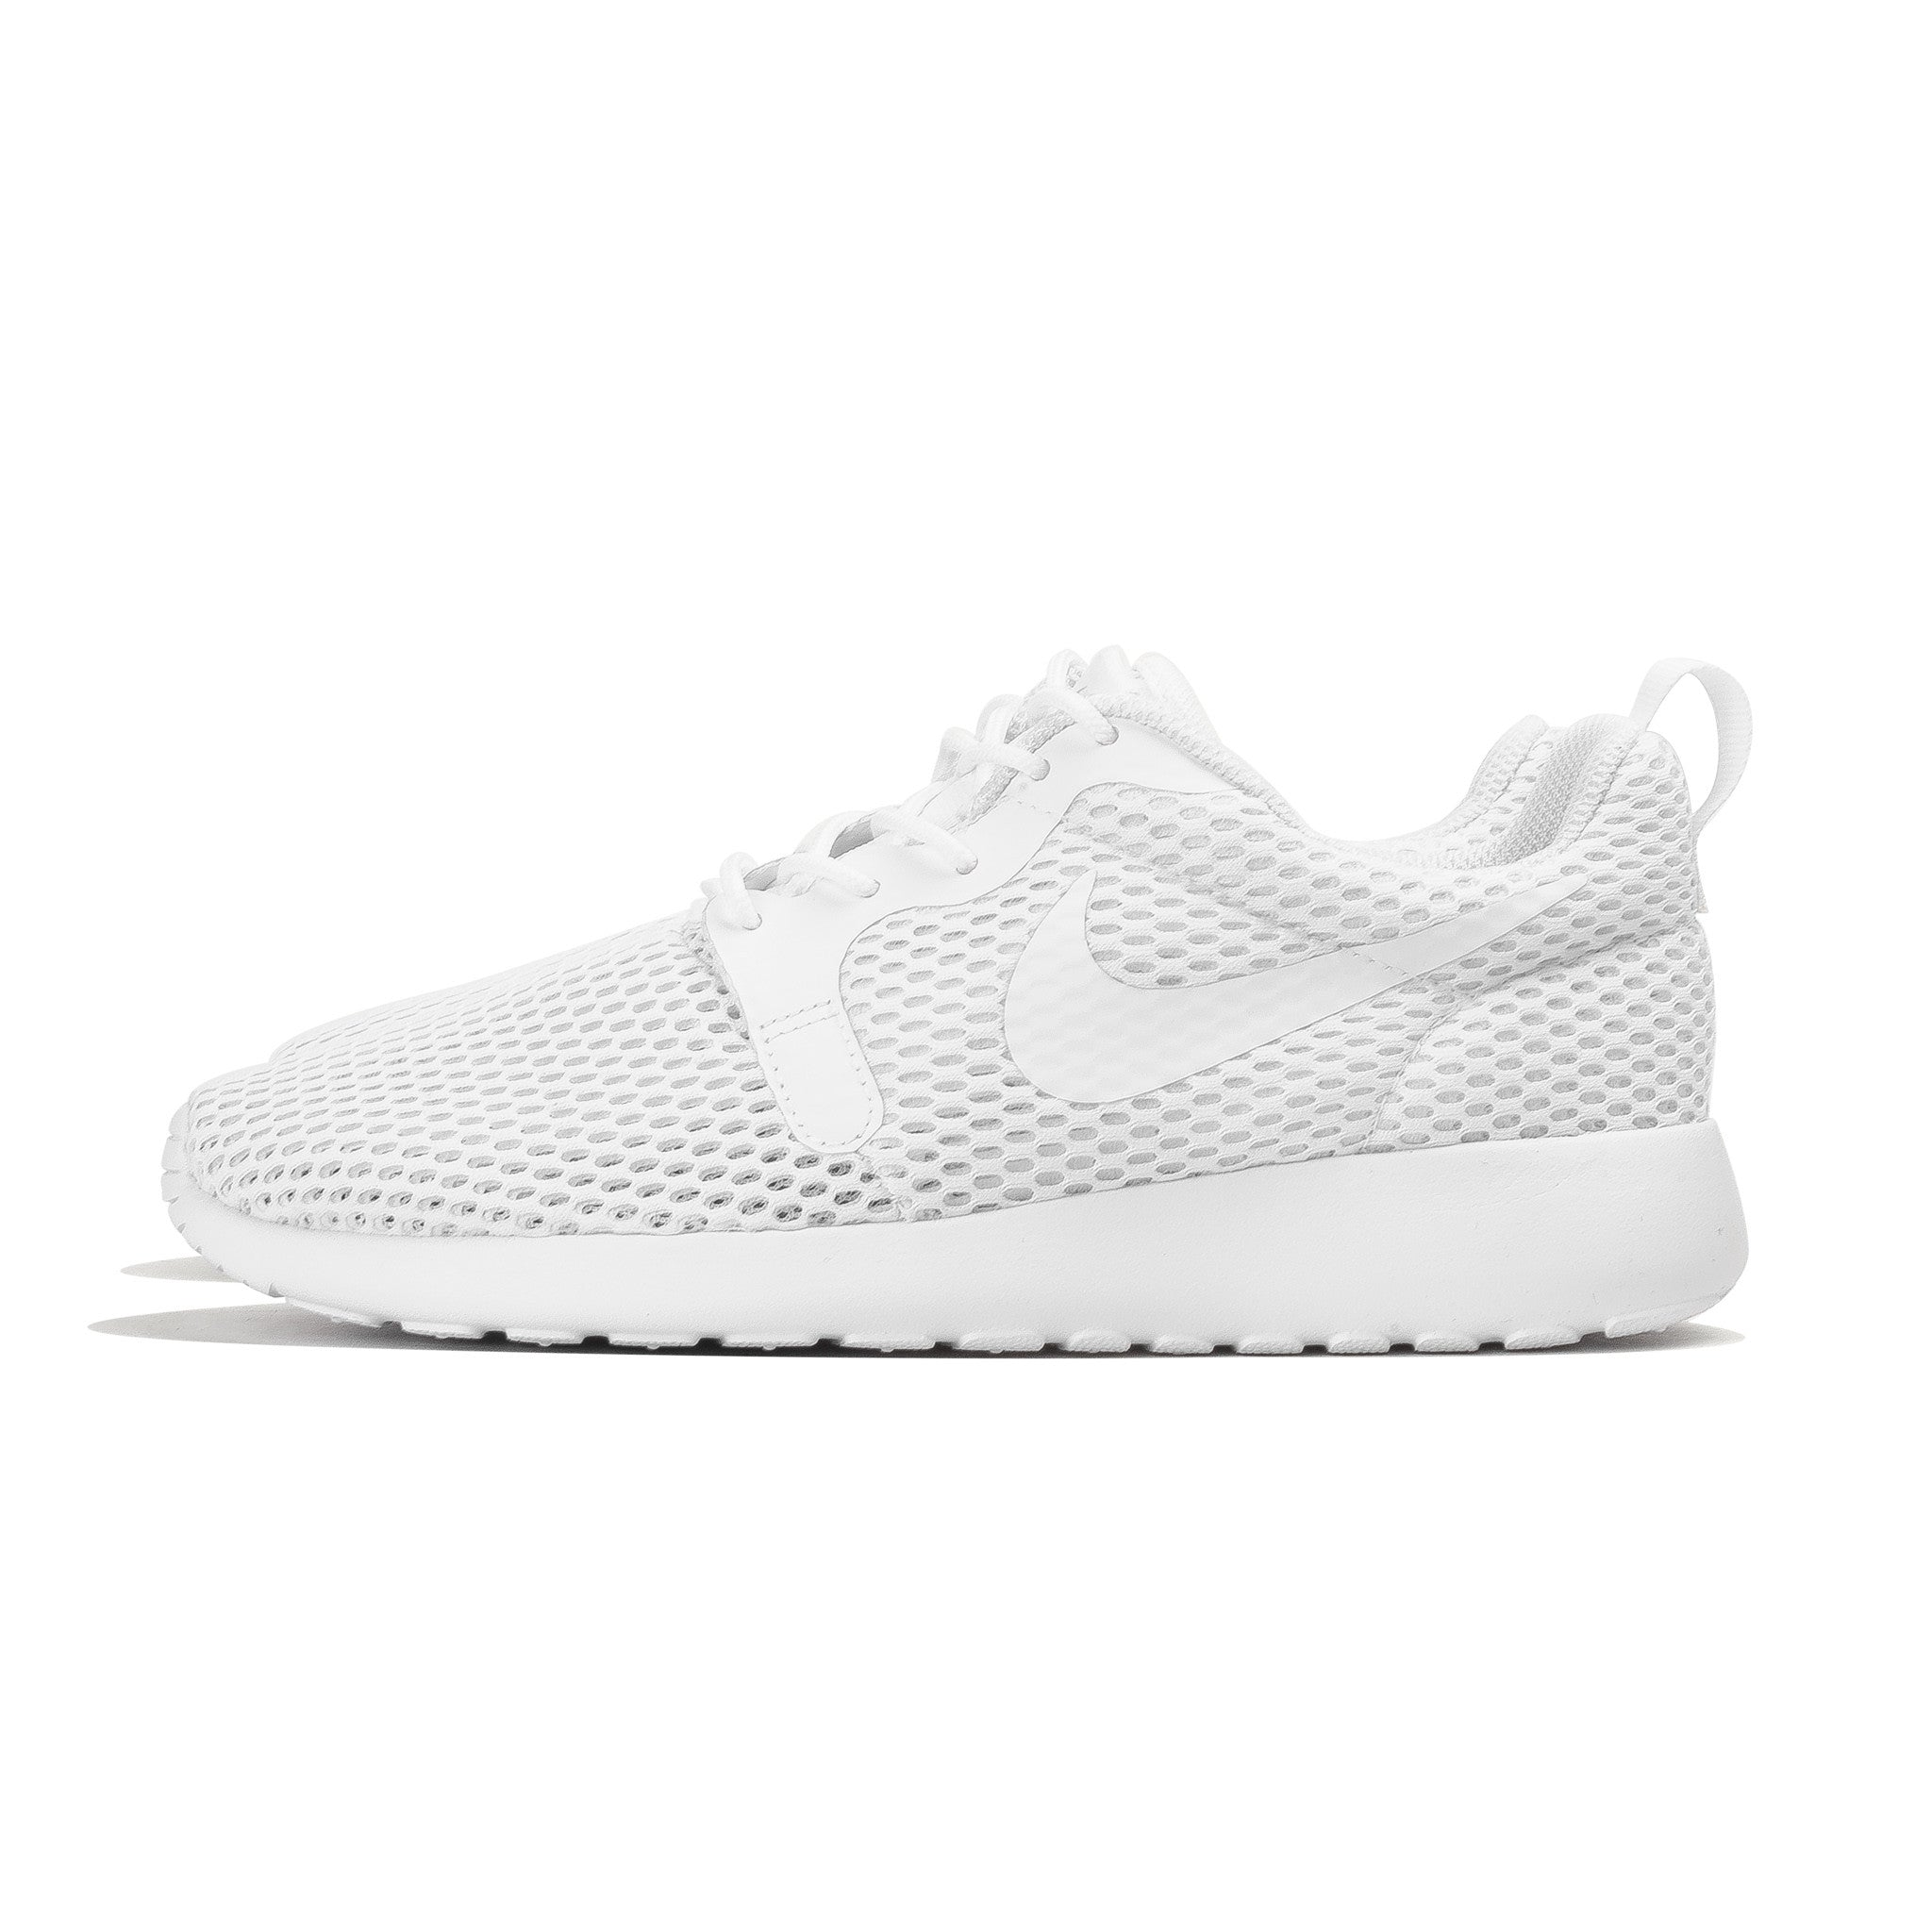 WMNS Roshe One HYP 833826-100